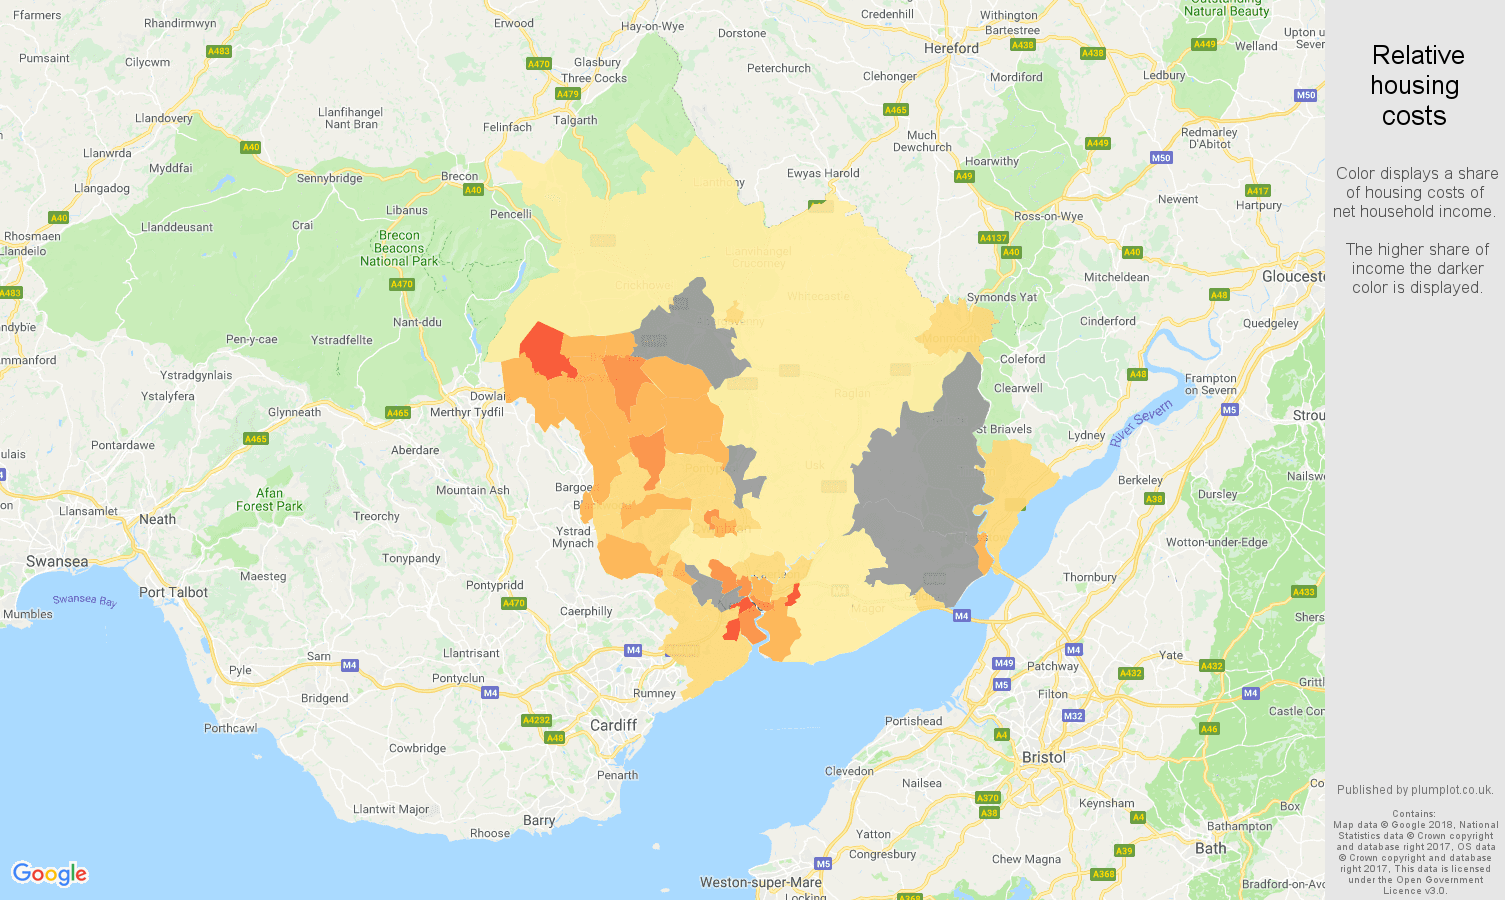 Newport relative housing costs map